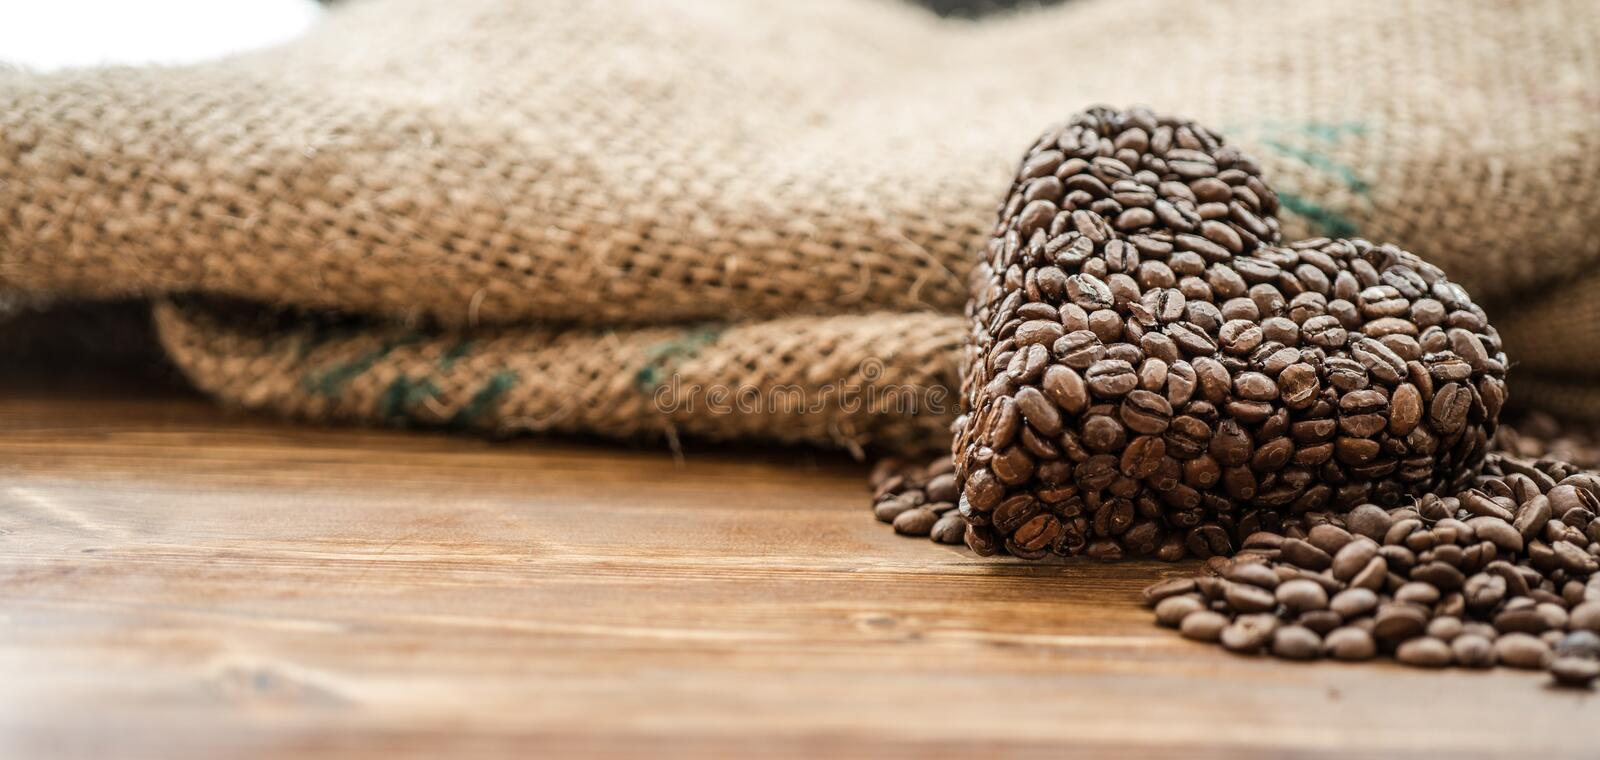 Coffee bag and heart from coffee beans on table royalty free stock photo